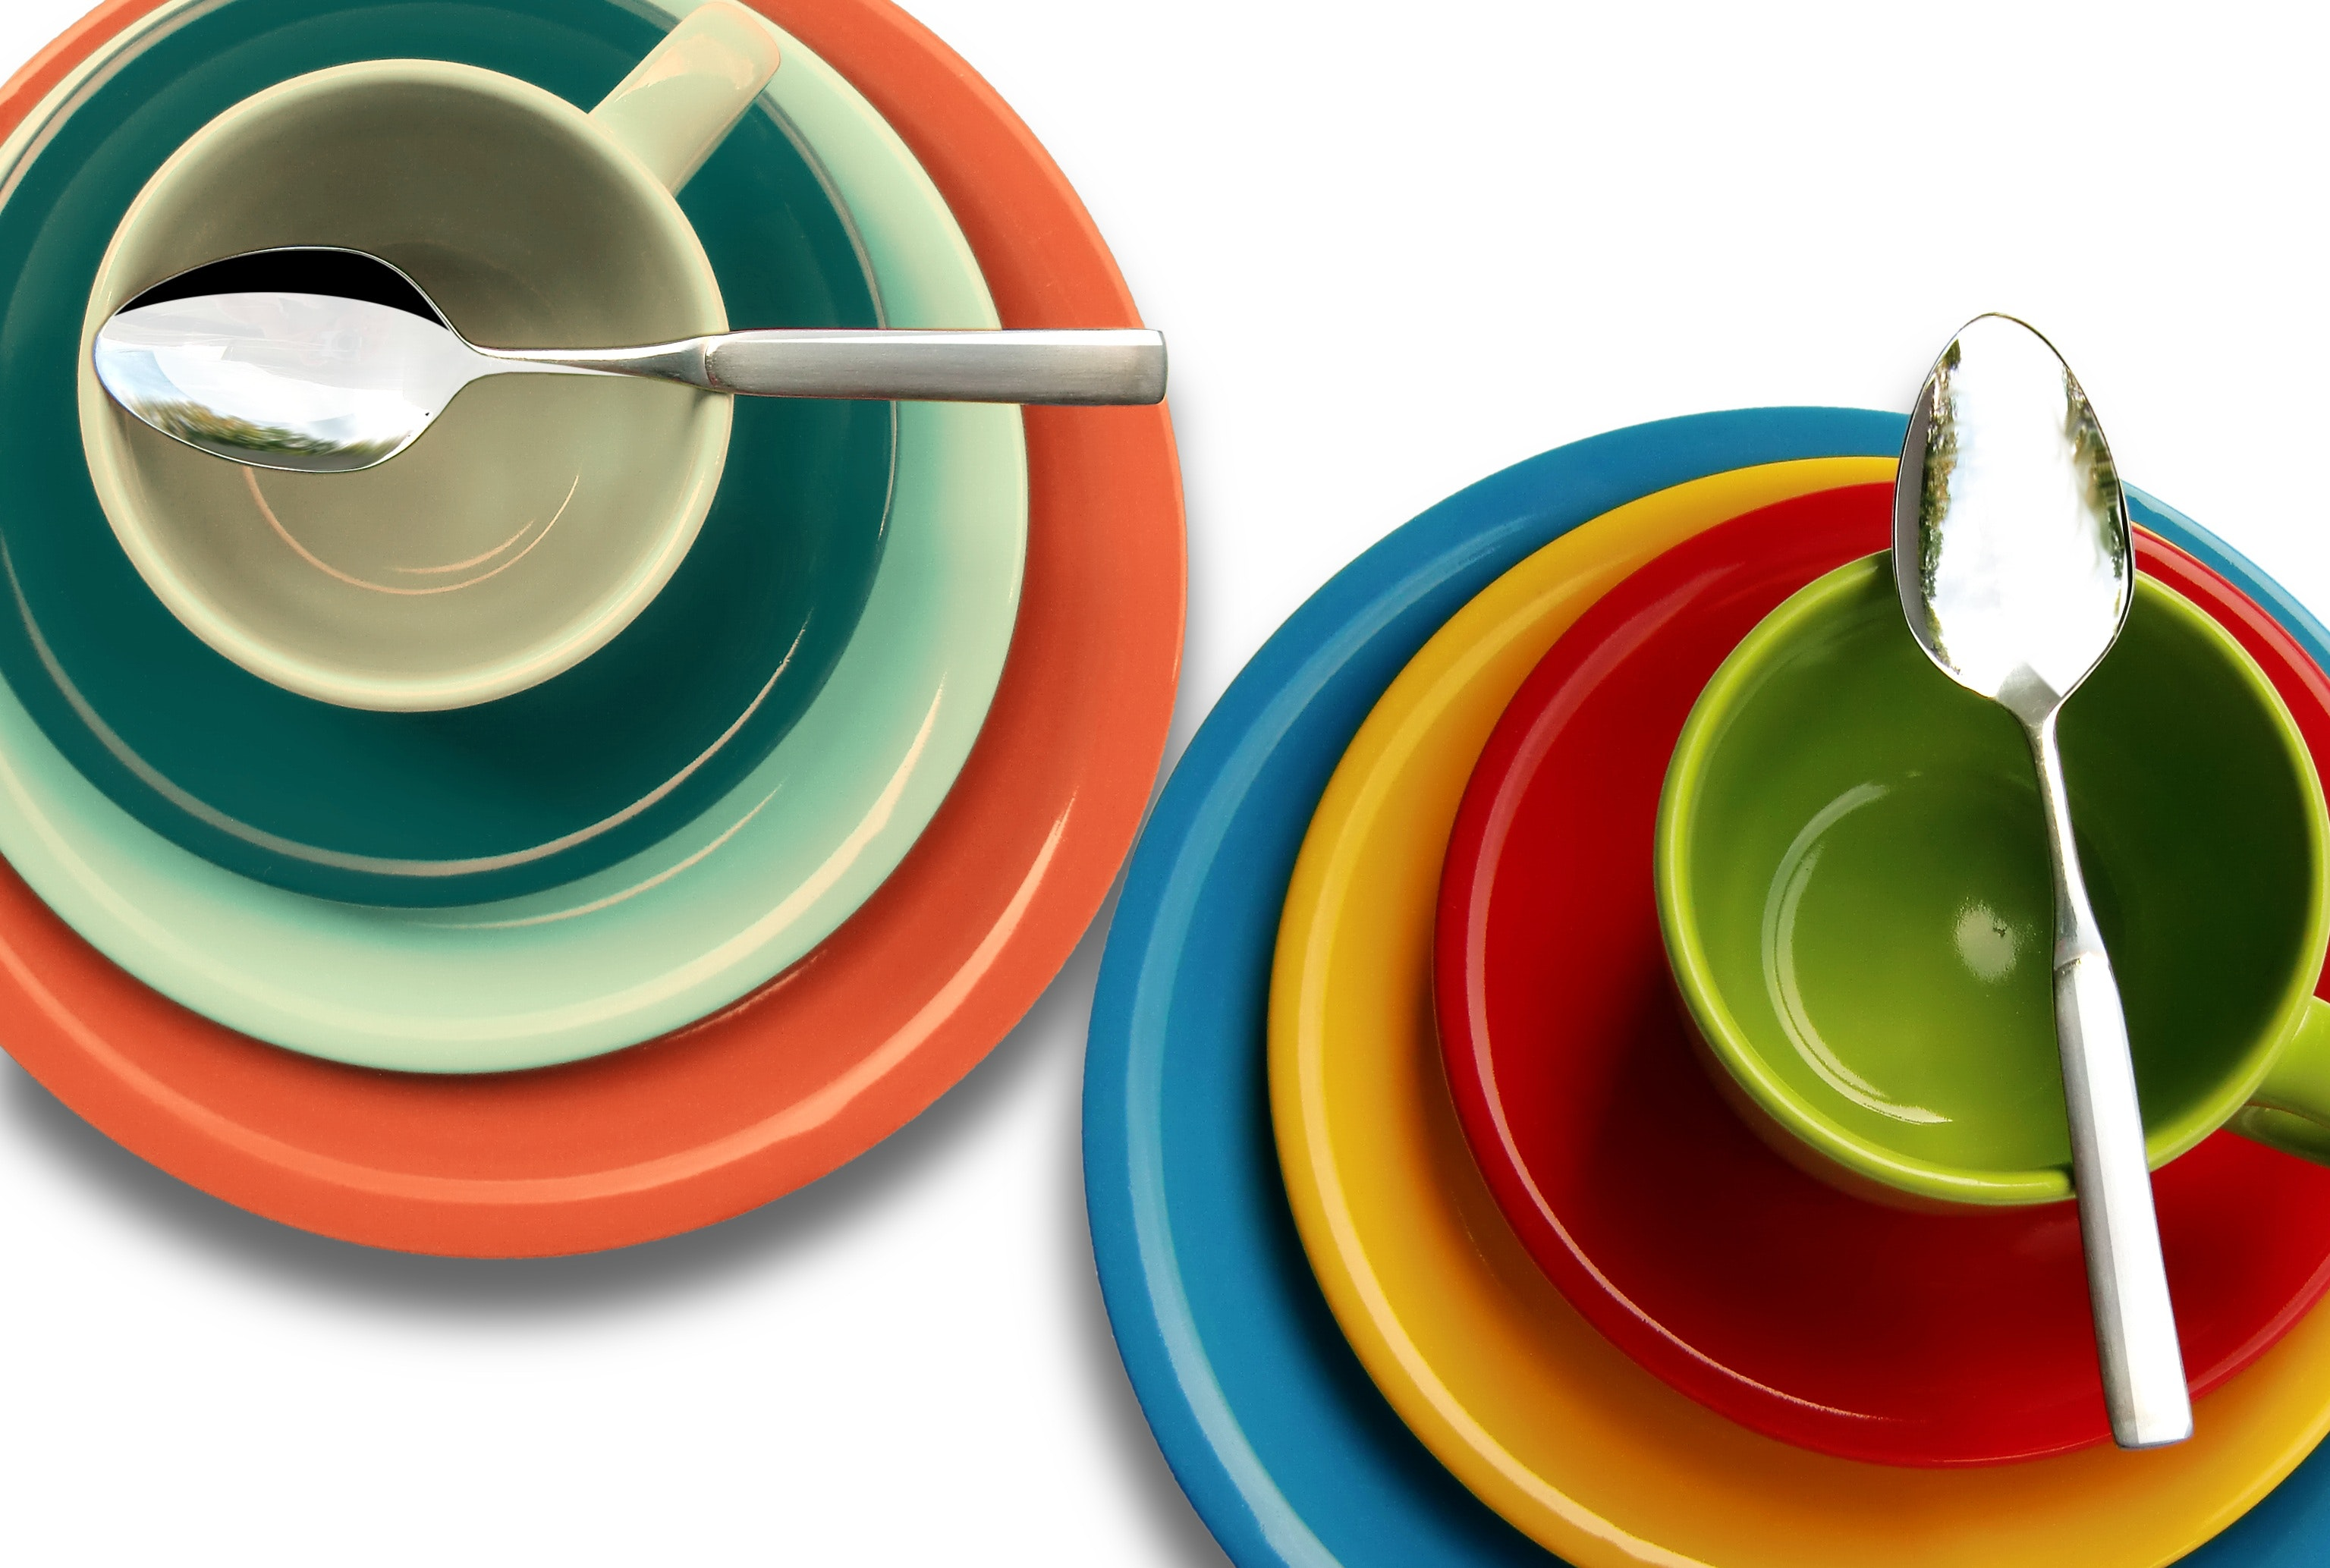 colorful dinnerware